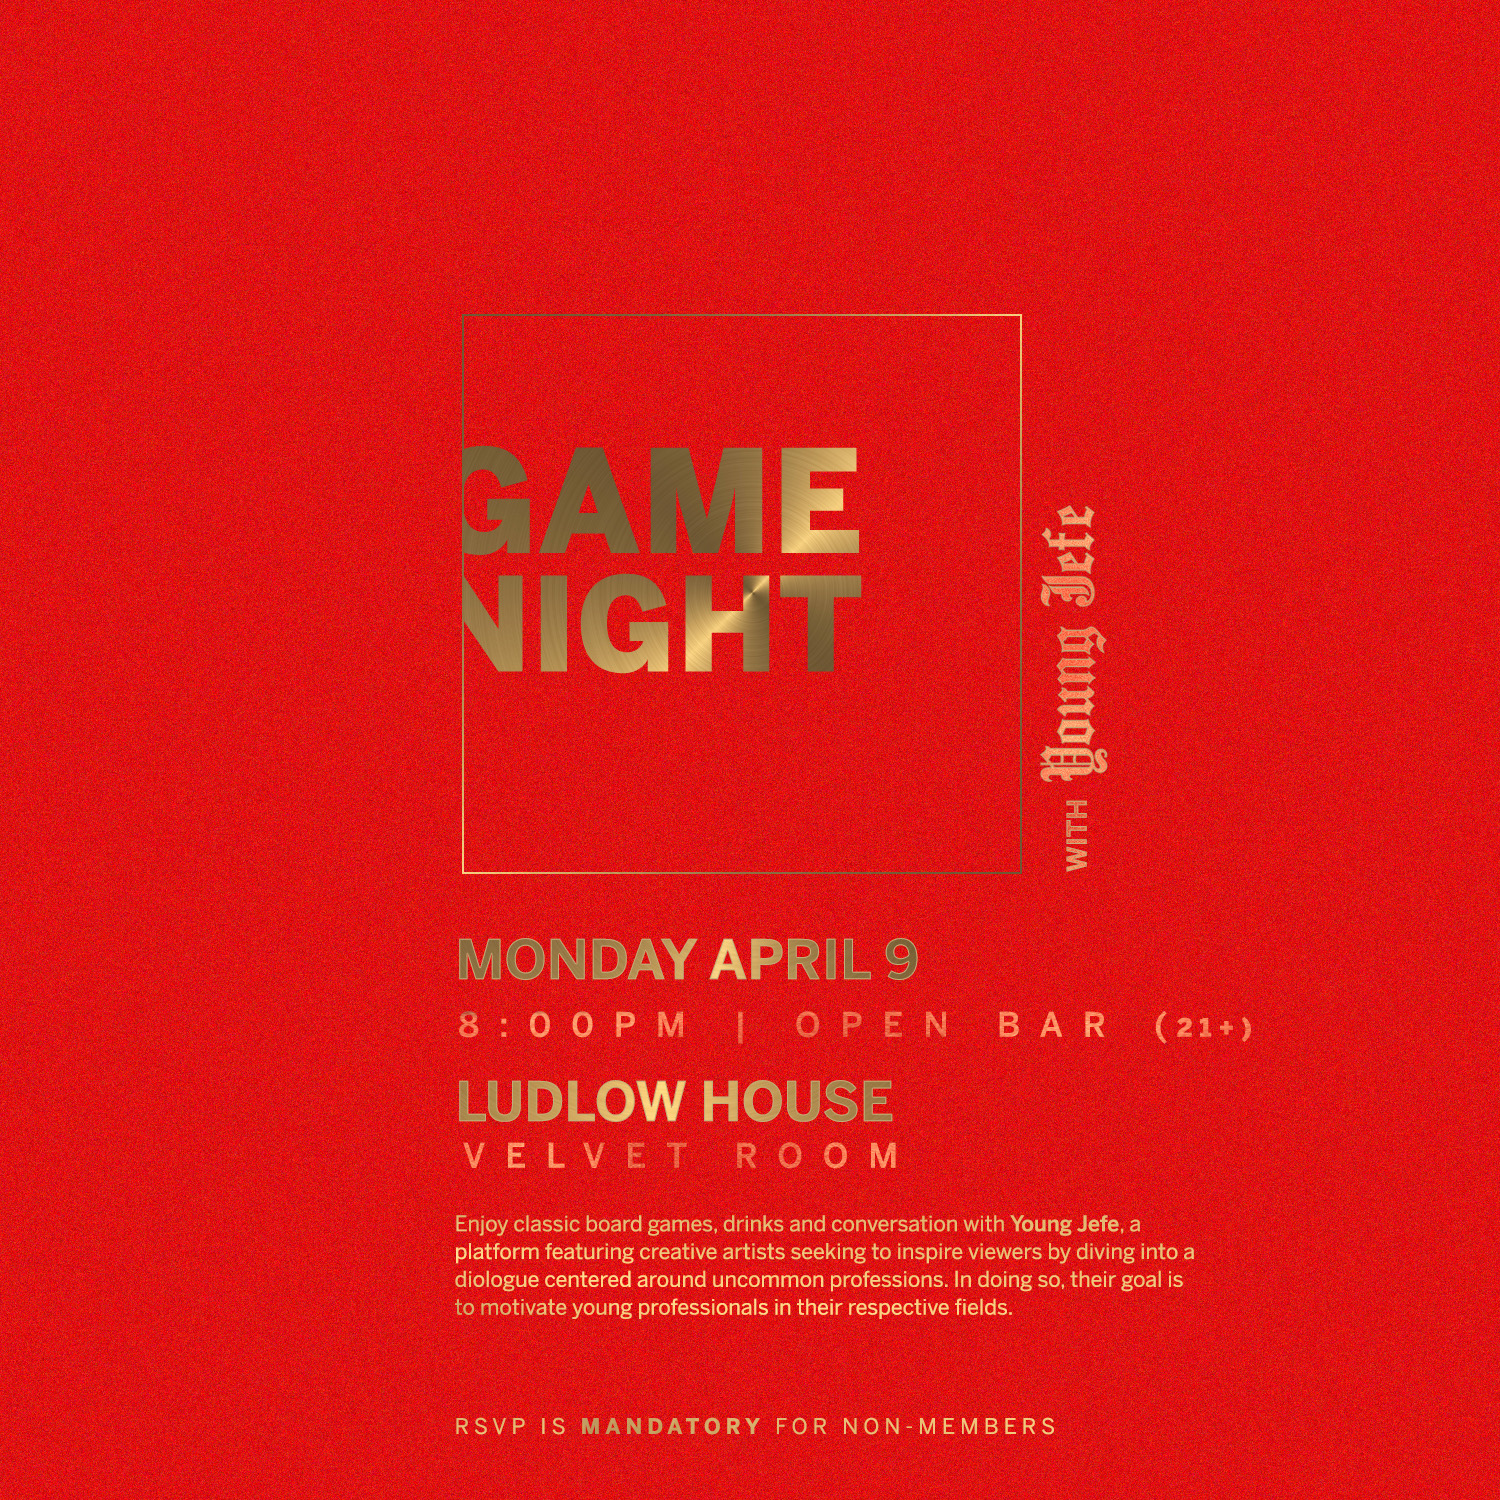 Young Jefe X Ludlow House Game Night (Event Playlist  Here )  April 9, 2018